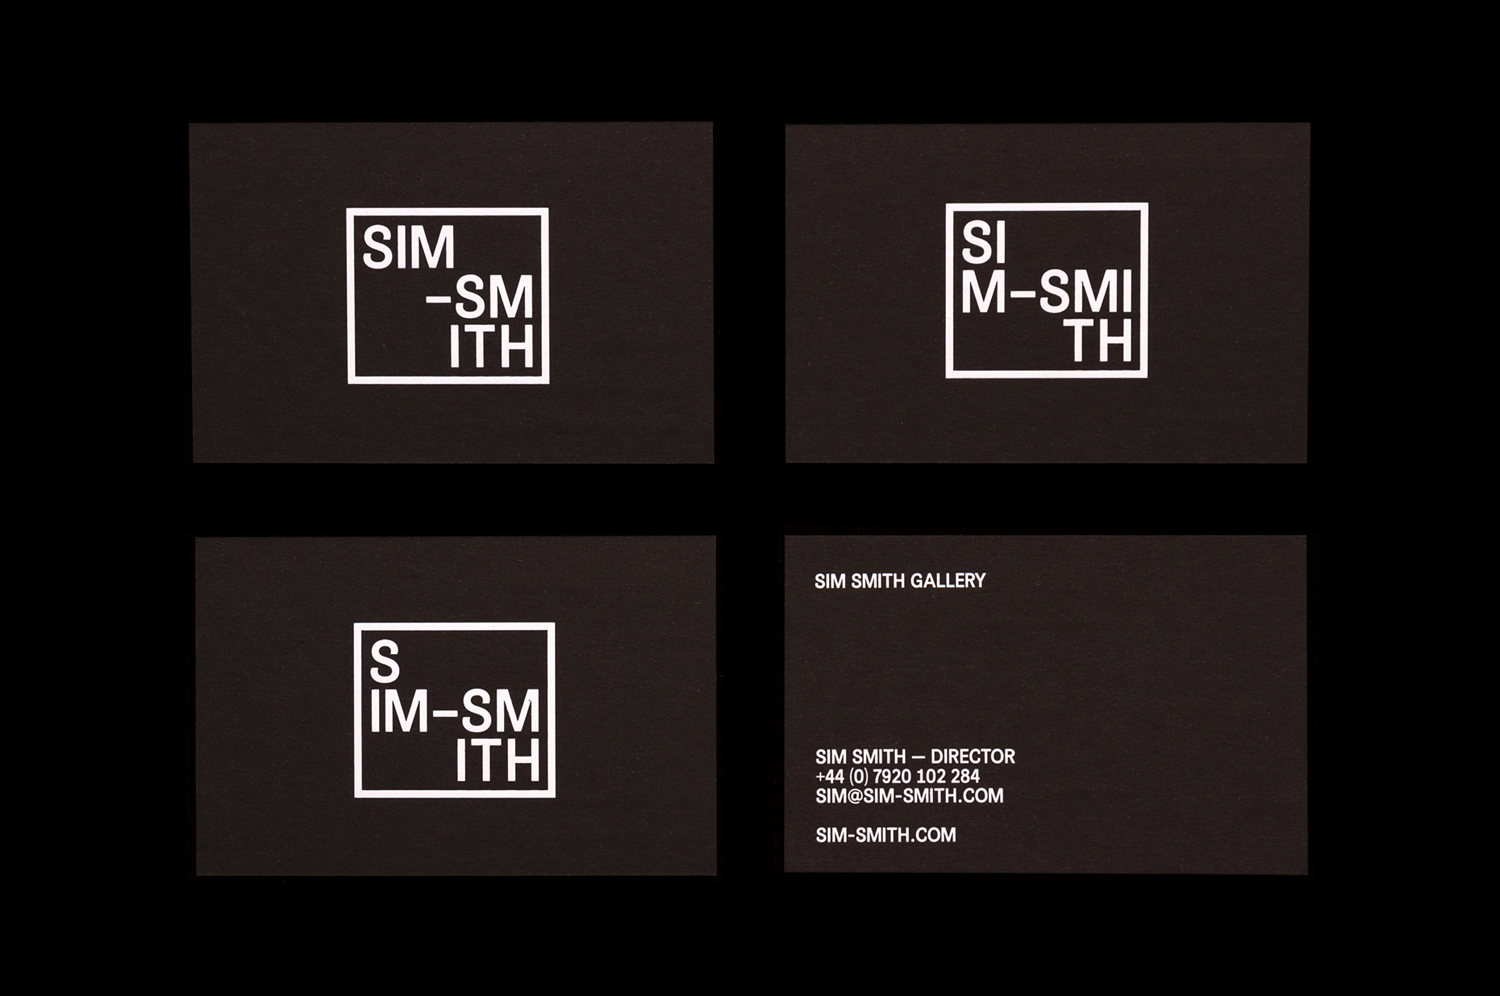 Art Gallery & Exhibition Branding – Sim Smith Gallery by Spin